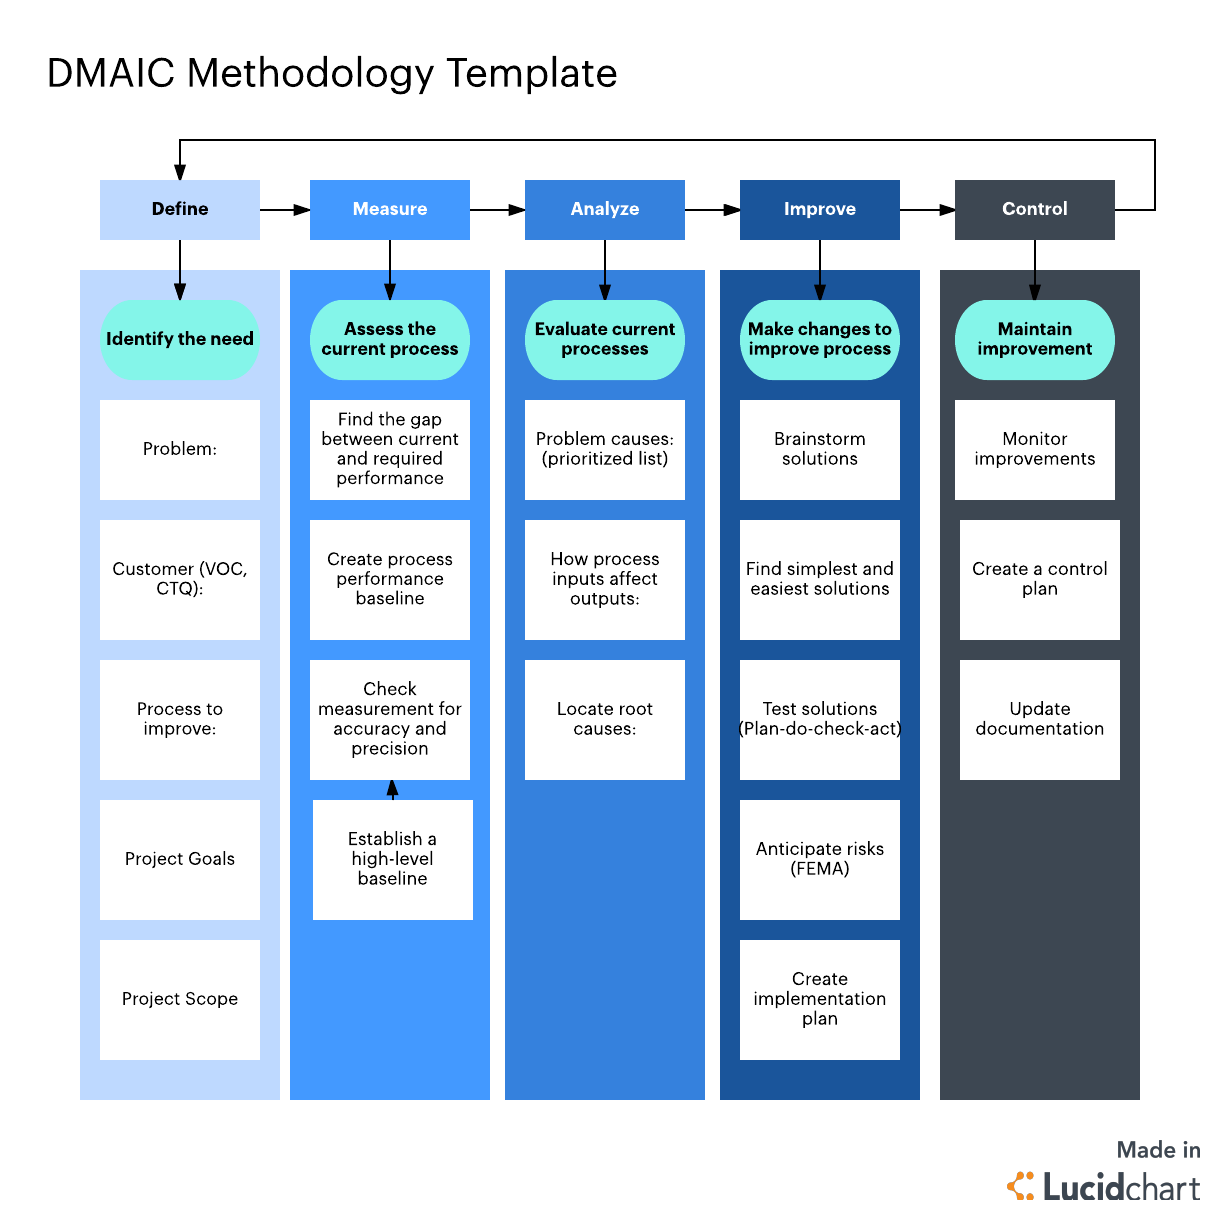 dmaic methodology template